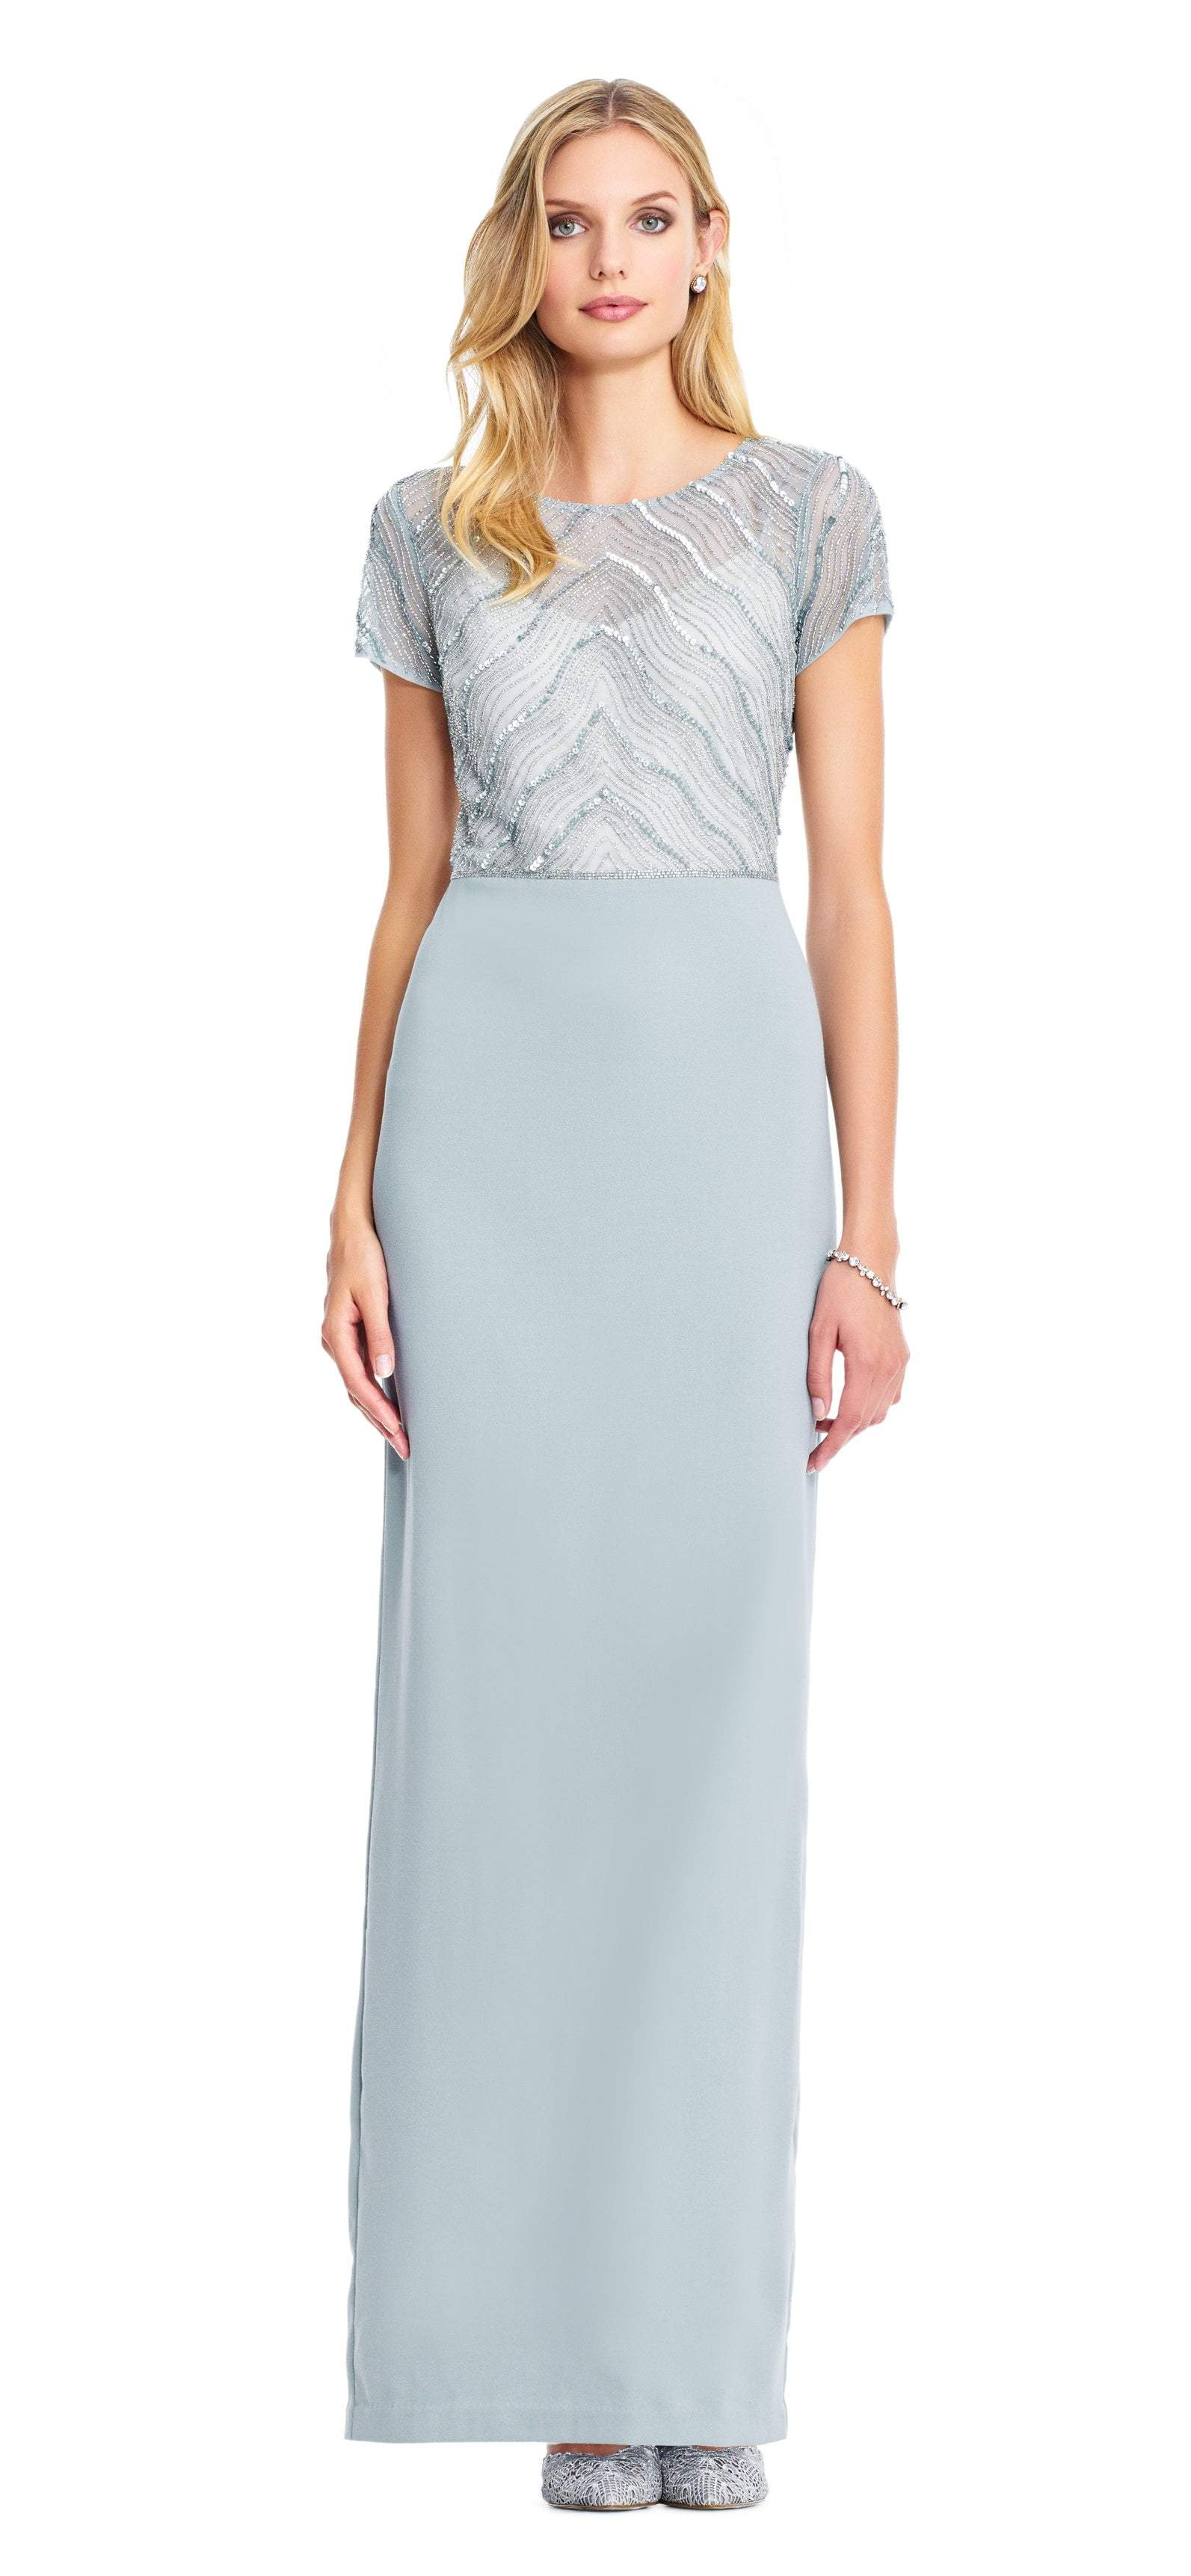 Adrianna Papell - AP1E203629 Bead Embellished Jewel Evening Gown In Blue